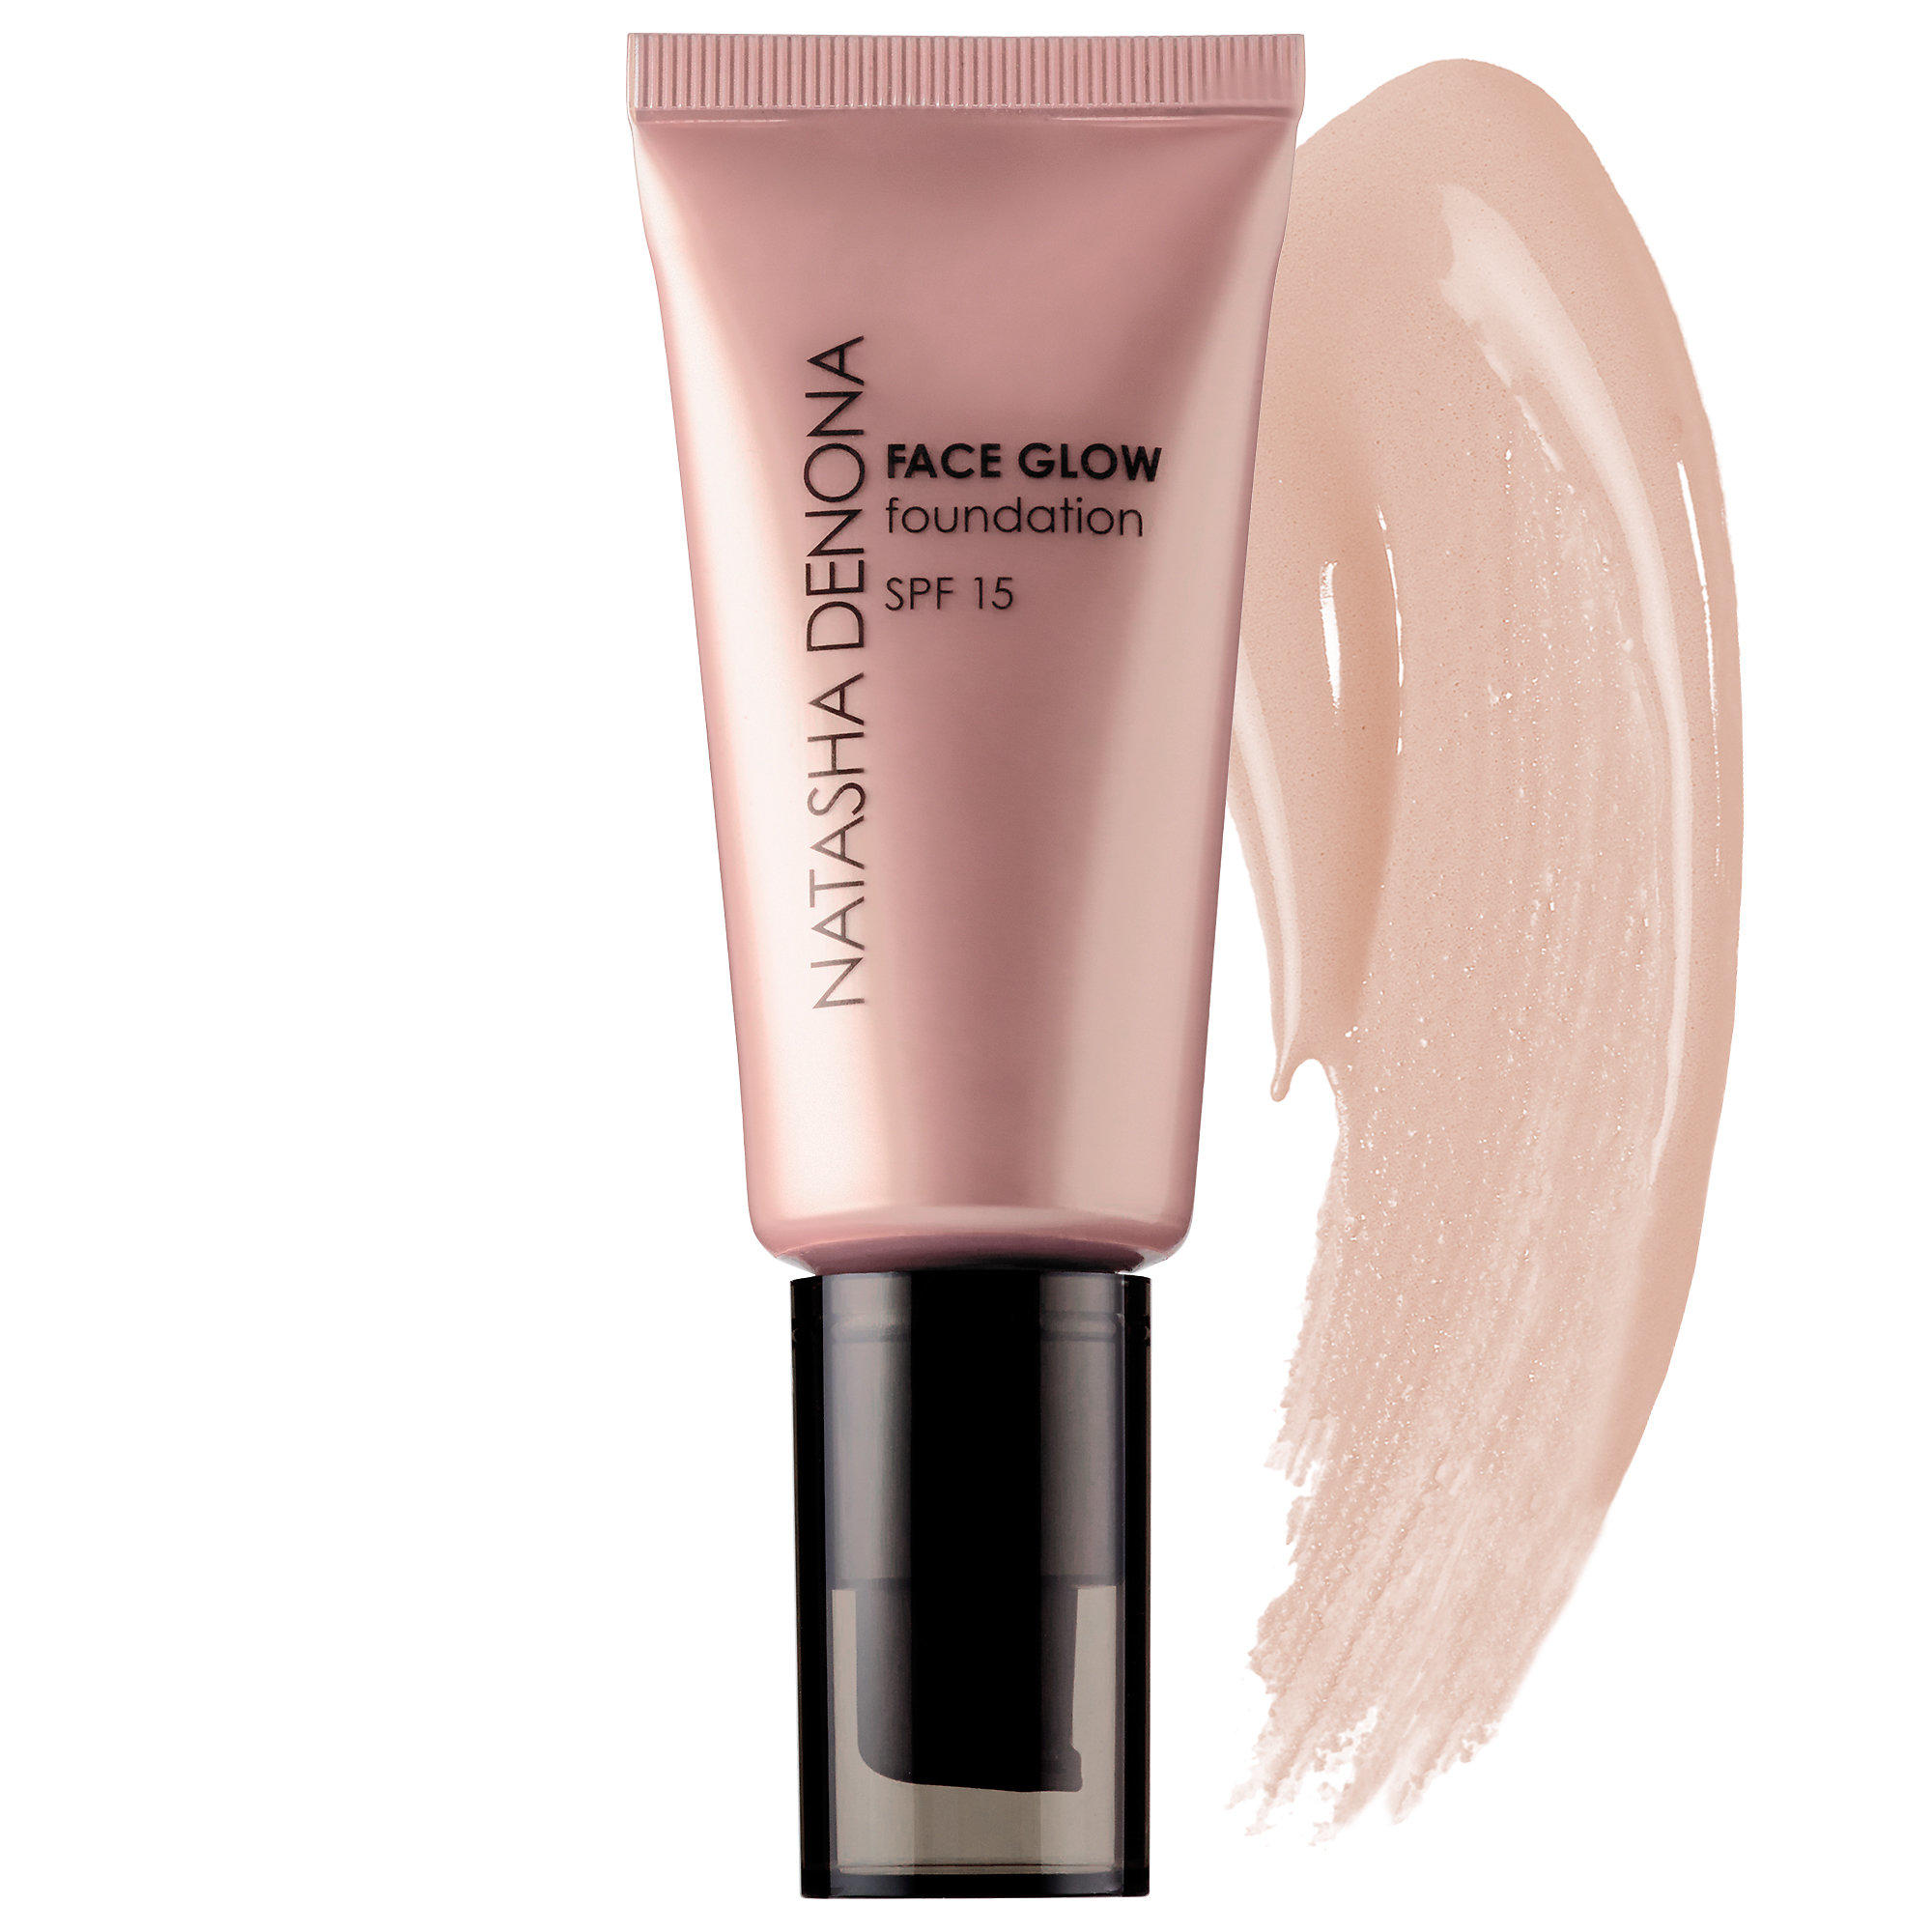 Natasha Denona Face Glow Foundation 20